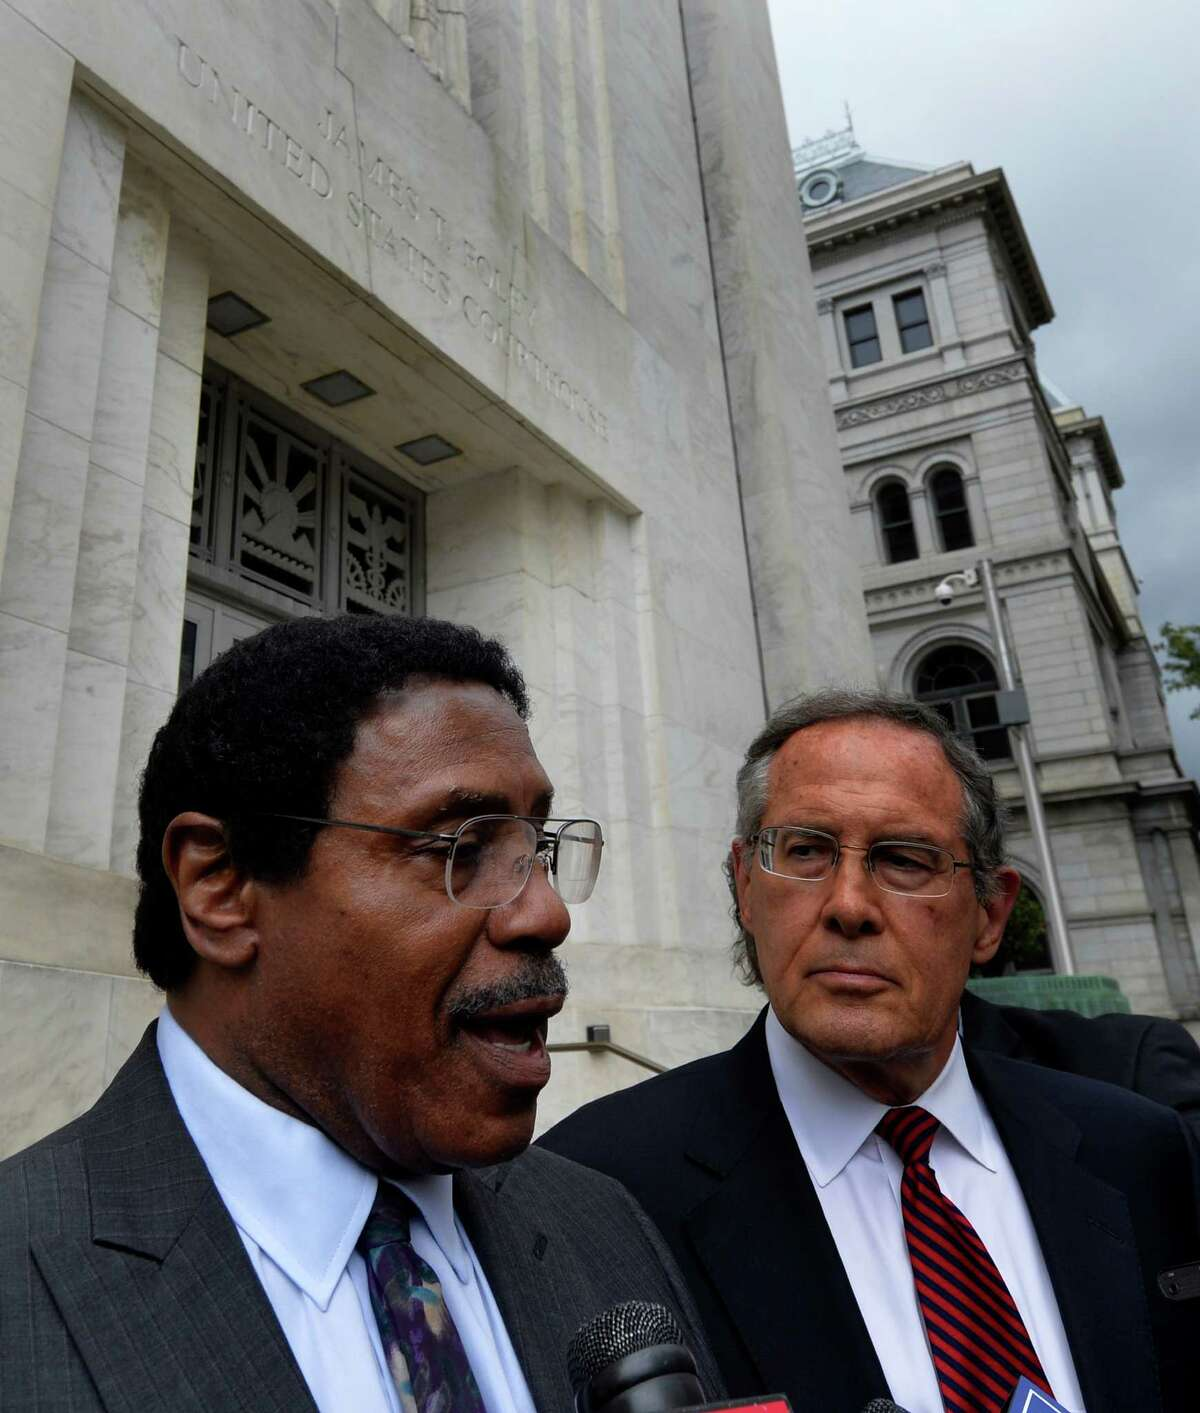 Assemblyman William Scarborough speaks to the media under the supervision of his attorney E. Stewart Jones, right, after his appearance in Federal Court Wednesday afternoon Oct. 1, 2014 in Albany, N.Y. (Skip Dickstein/Times Union)